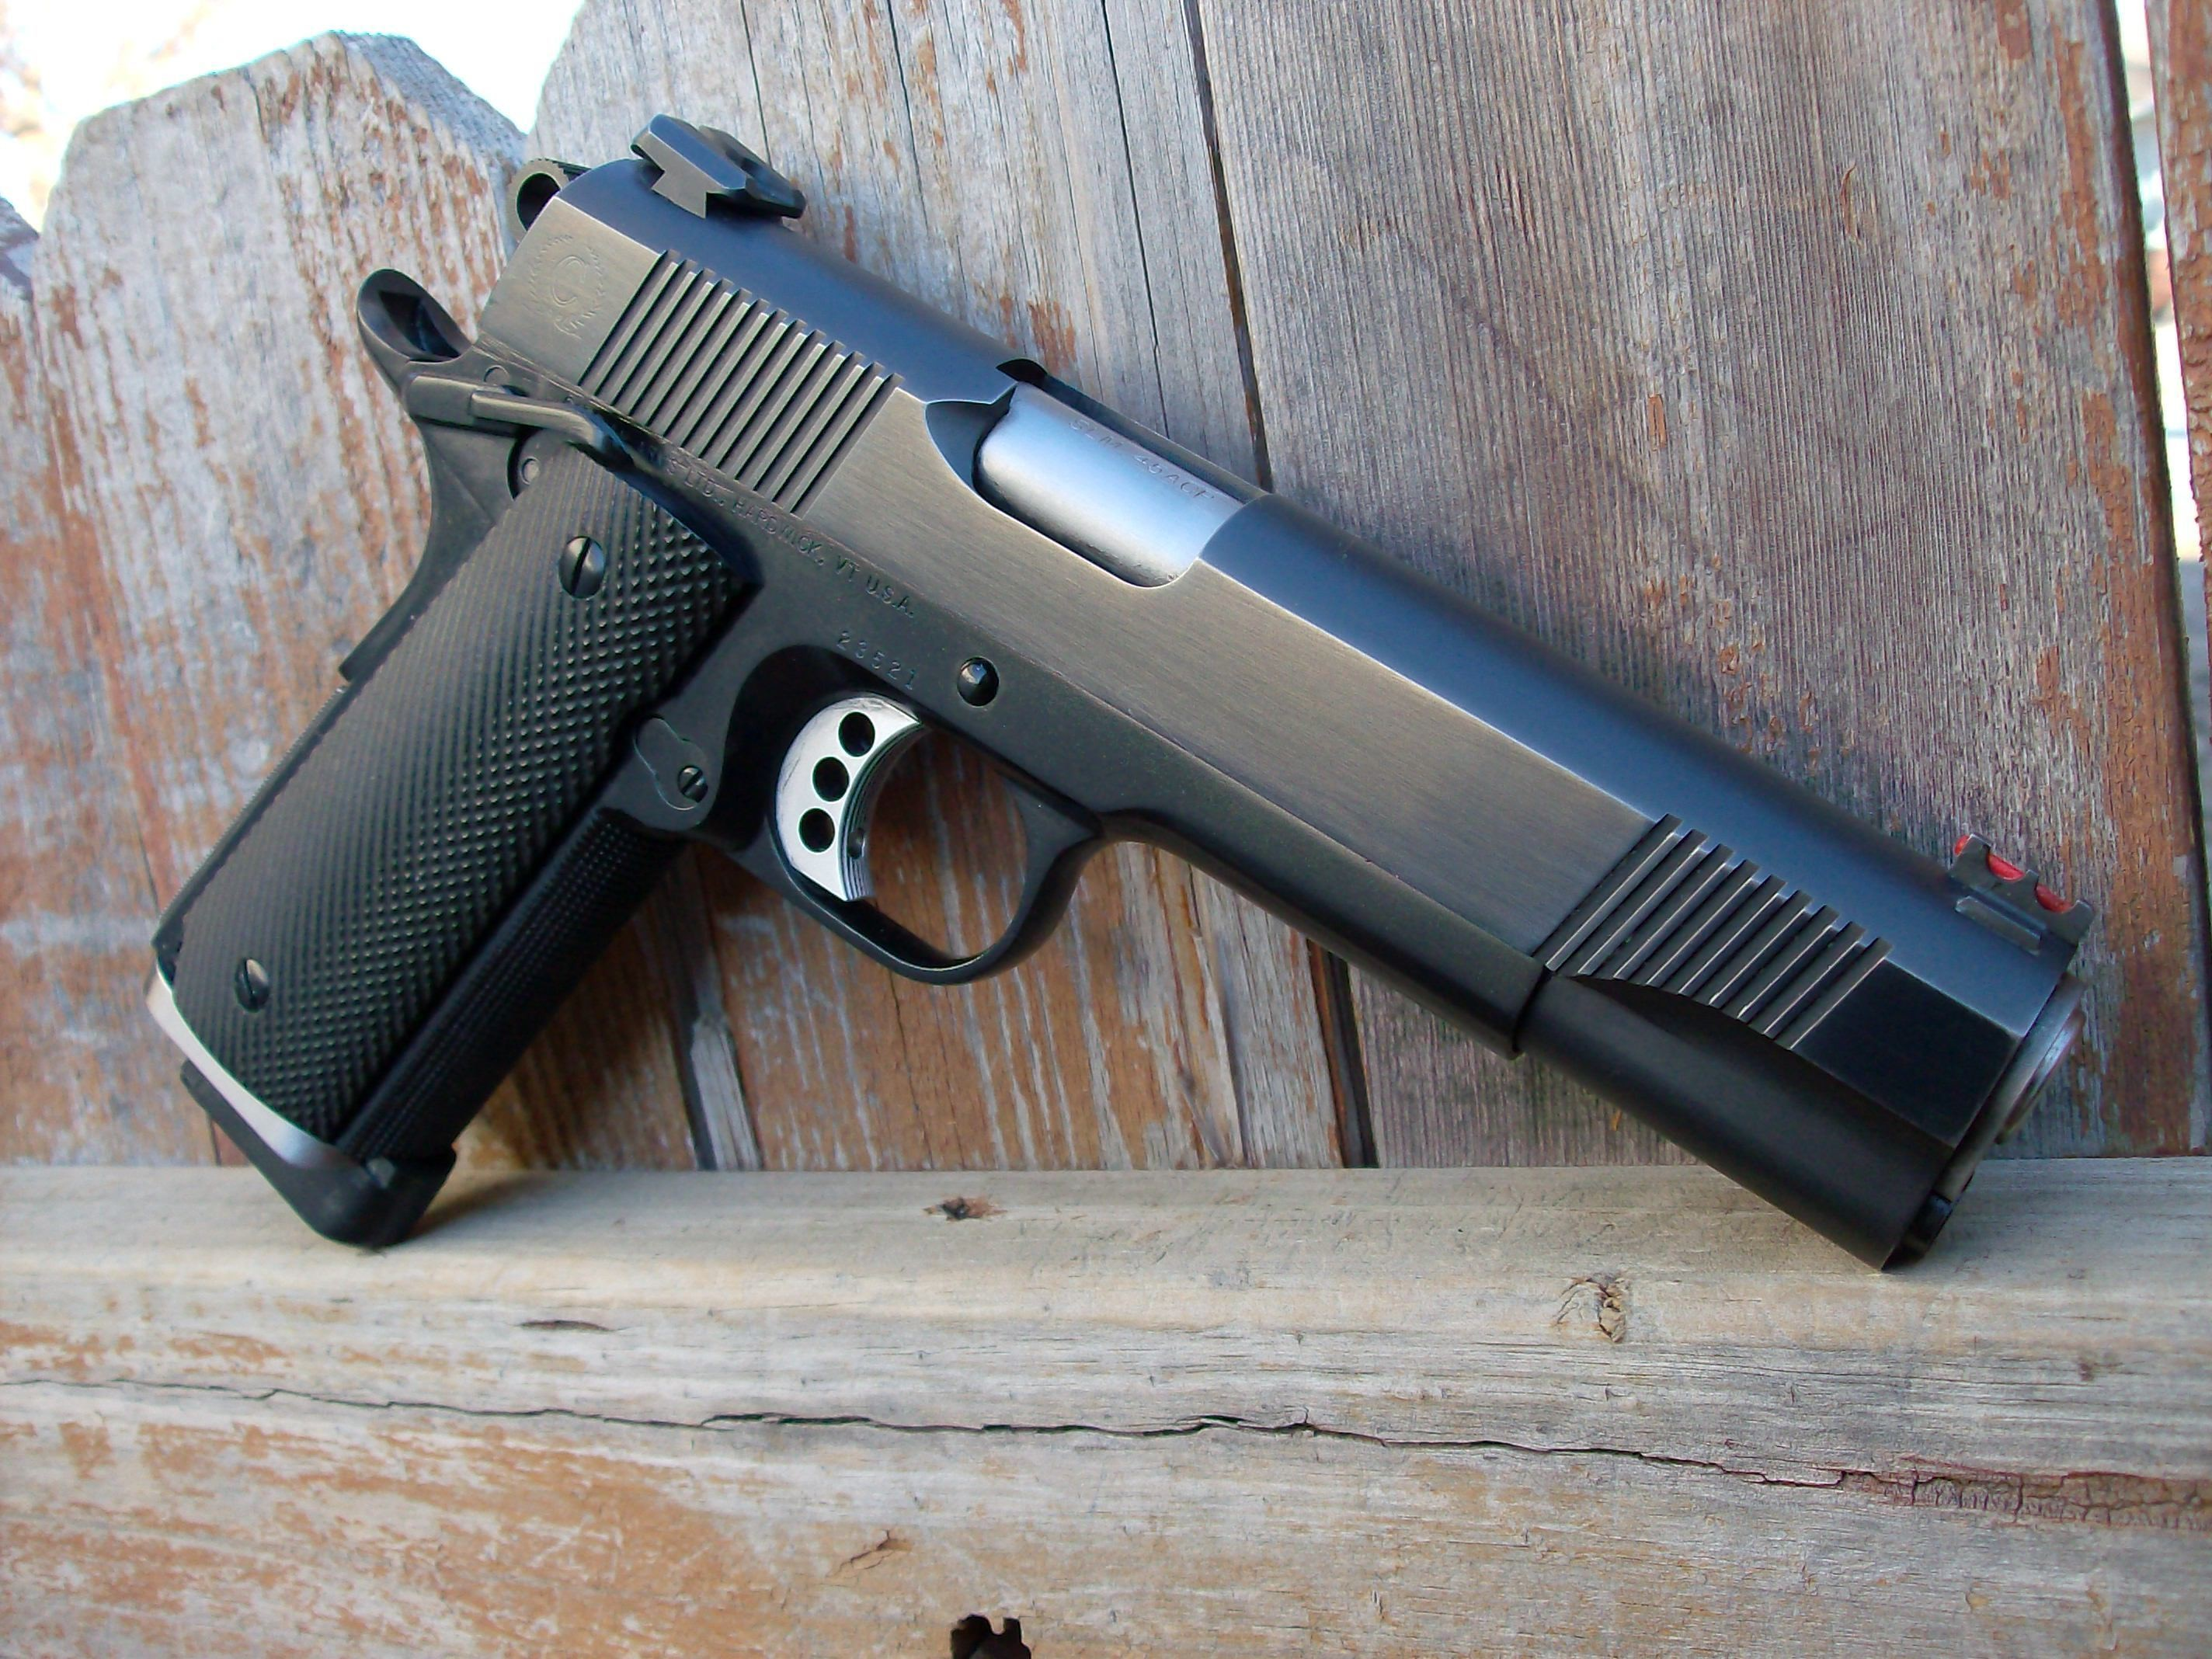 Res: 2848x2136, By Chu Goggin PC.564: Colt 1911 Wallpaper Backgrounds Backgrounds